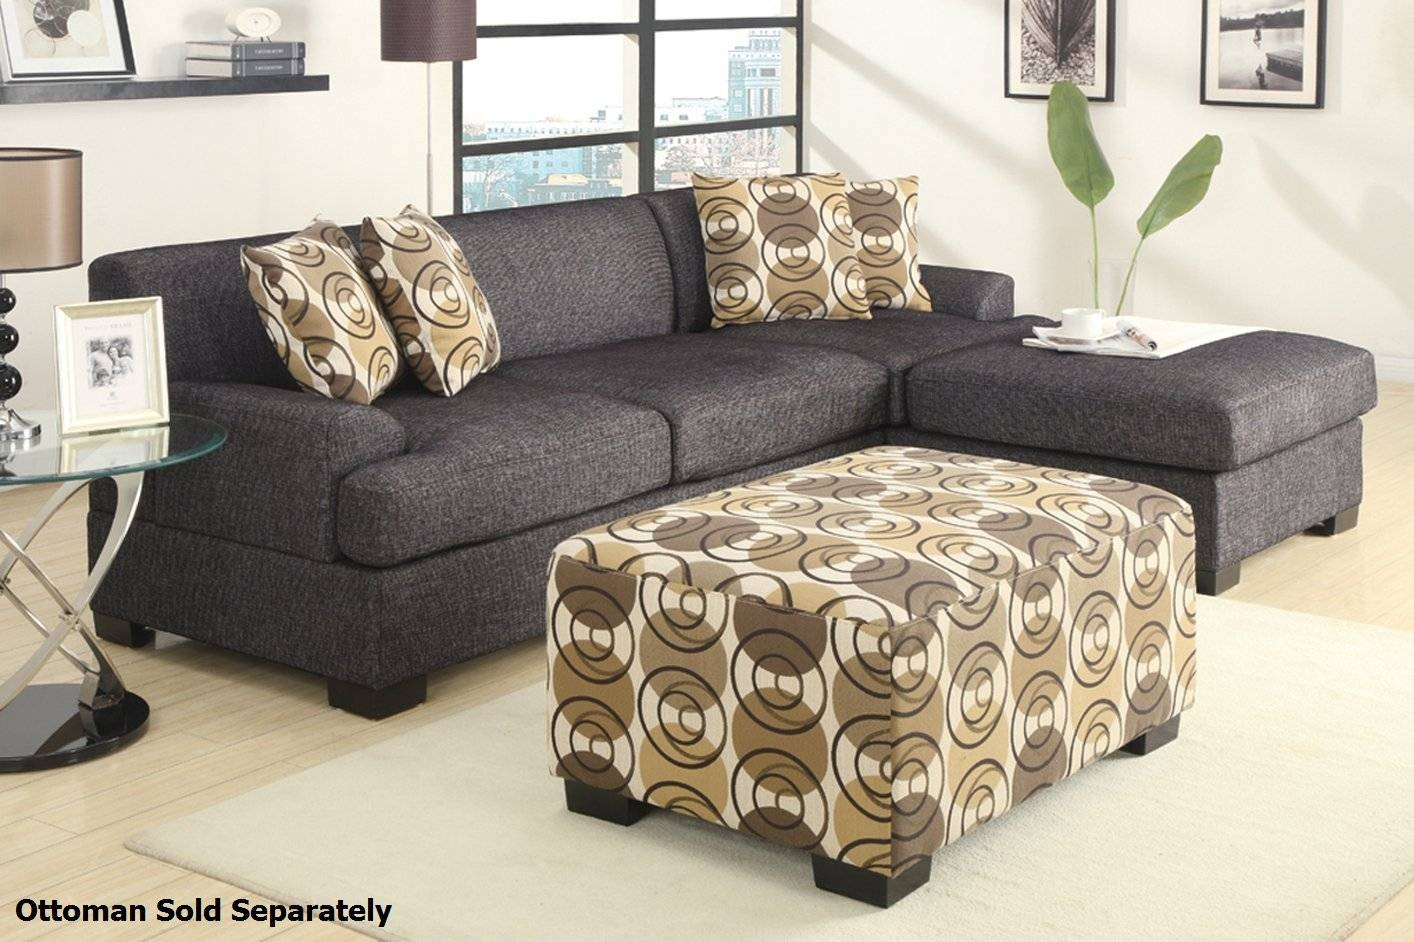 Montreal Ii Grey Fabric Sectional Sofa - Steal-A-Sofa Furniture intended for Fabric Sectional Sofa (Image 21 of 30)